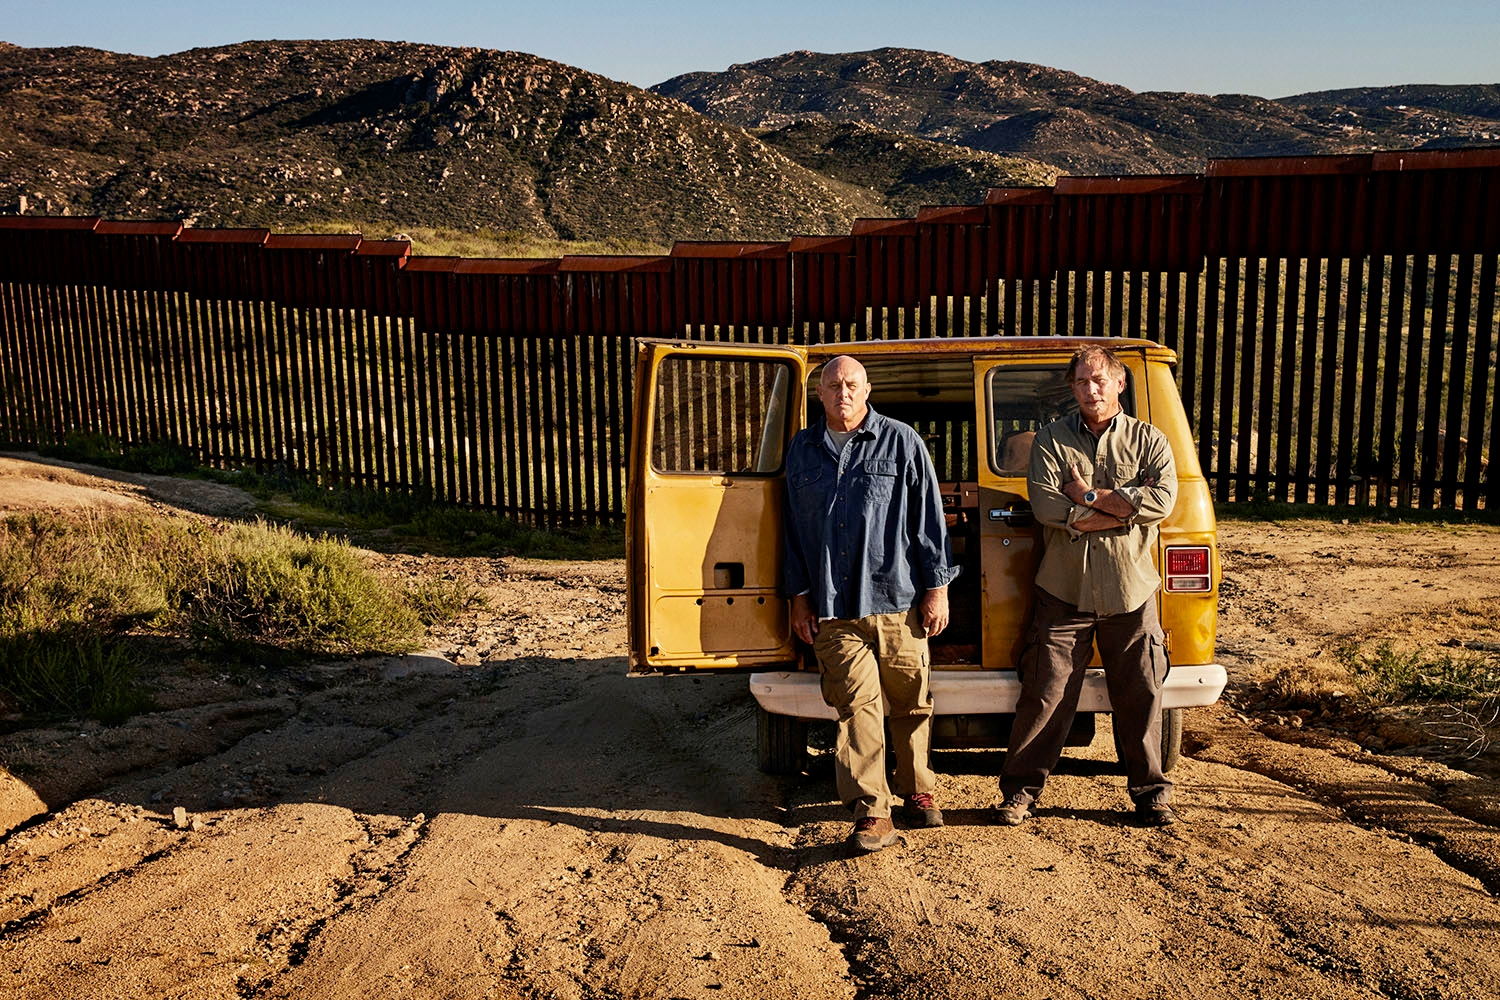 Elden Kidd and Tim Burraston on the US/Mexico Border - Tecate, CA from The Legend of Elden Kidd, America's Most Dedicated, Most Creative People Smuggler